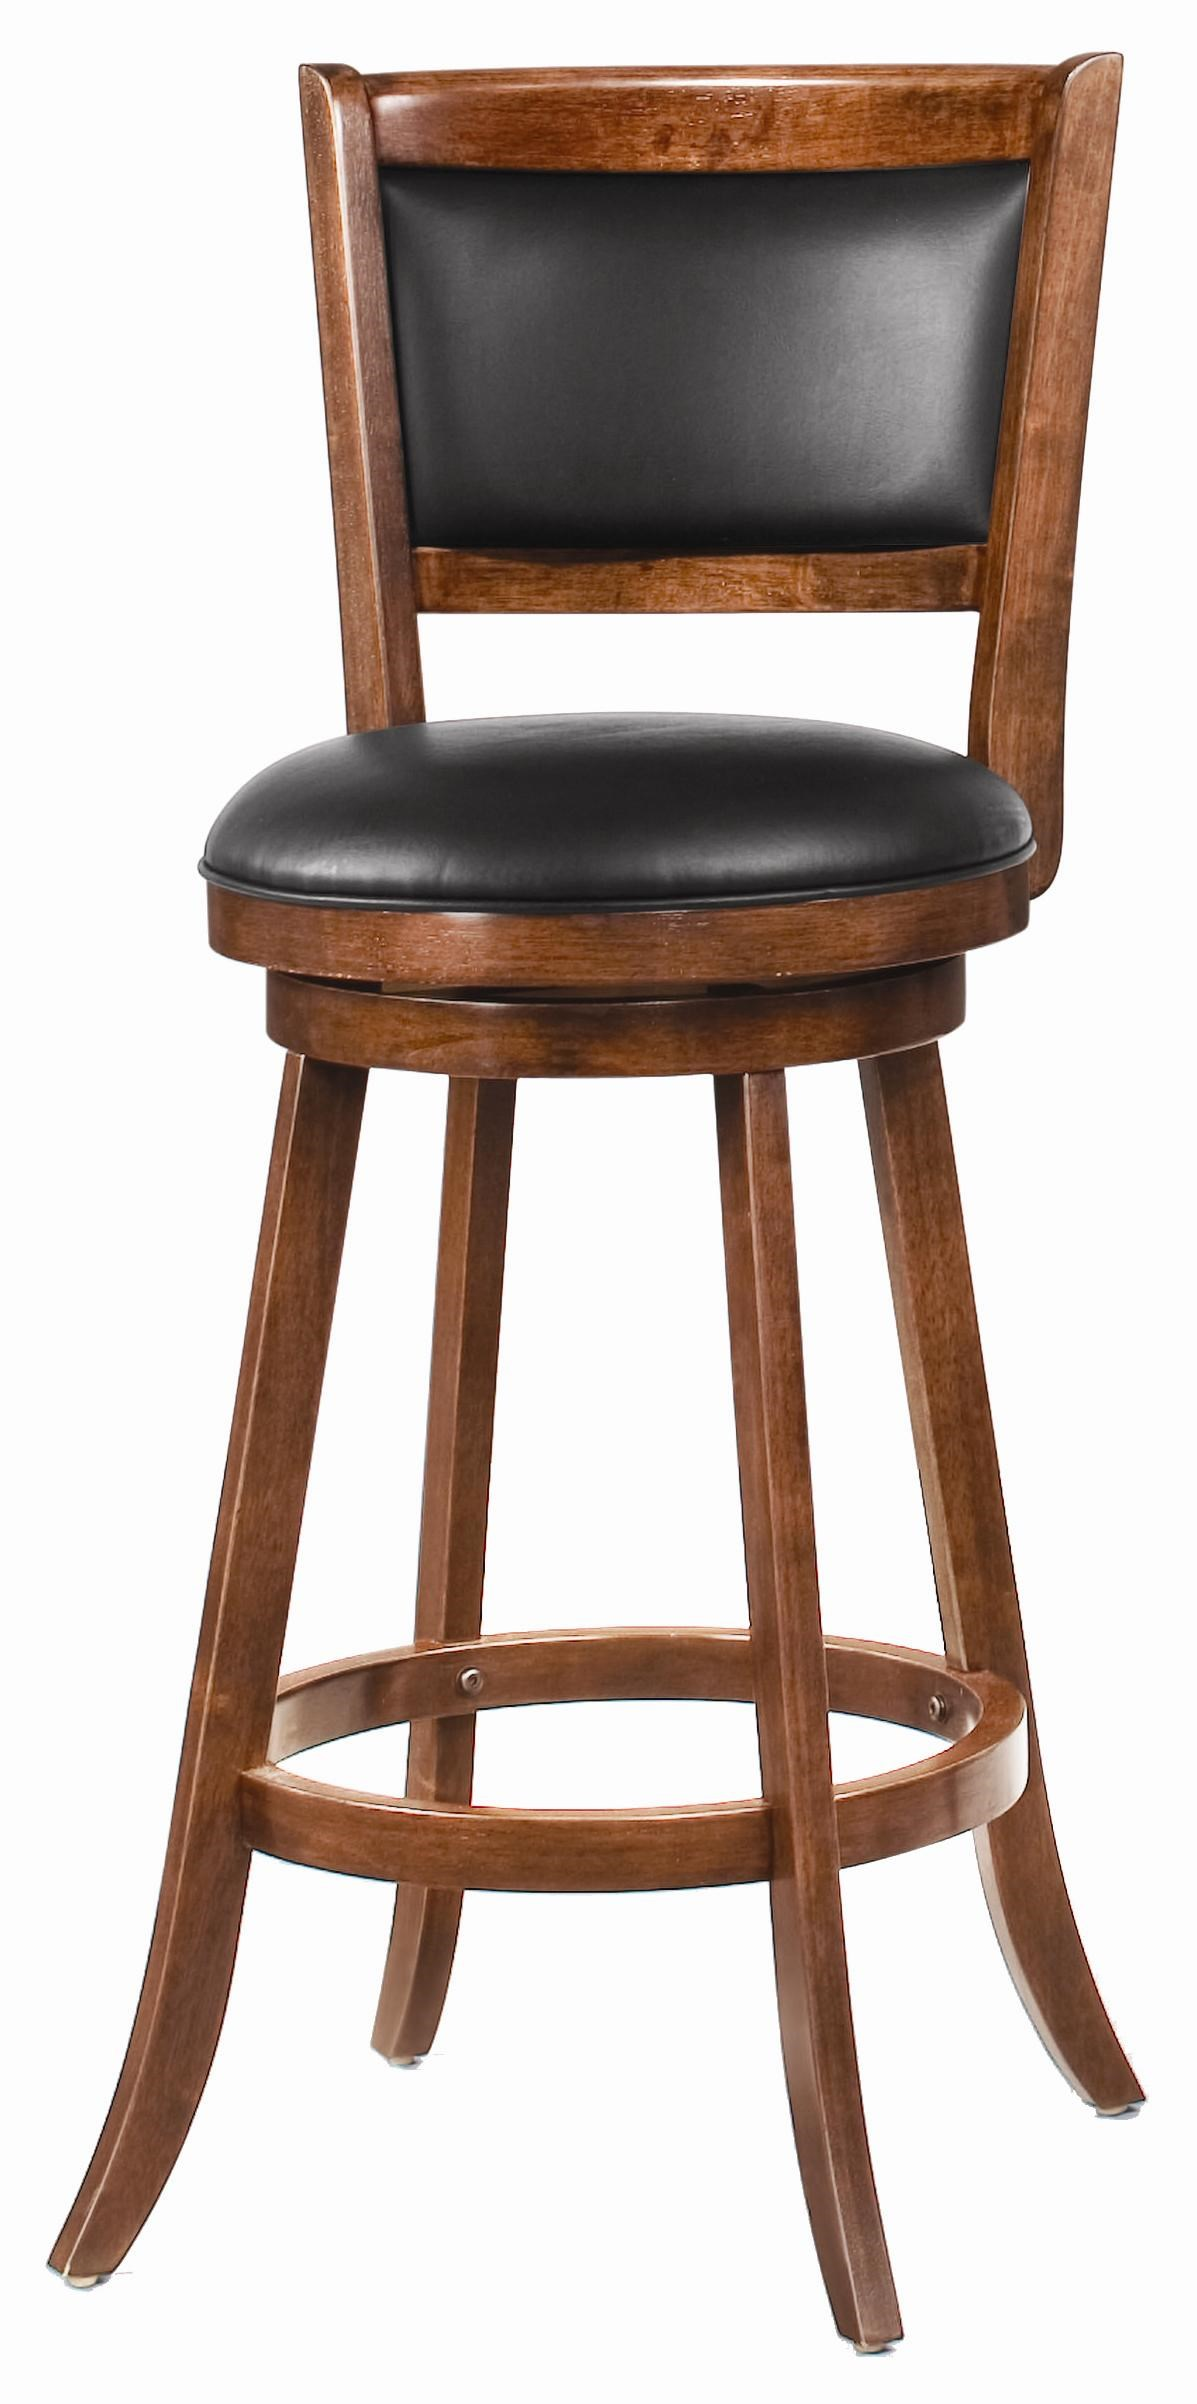 Coaster Dining Chairs and Bar Stools 29  Swivel Bar Stool with Upholstered Seat - Coaster Fine Furniture  sc 1 st  Coaster Fine Furniture & Coaster Dining Chairs and Bar Stools 29